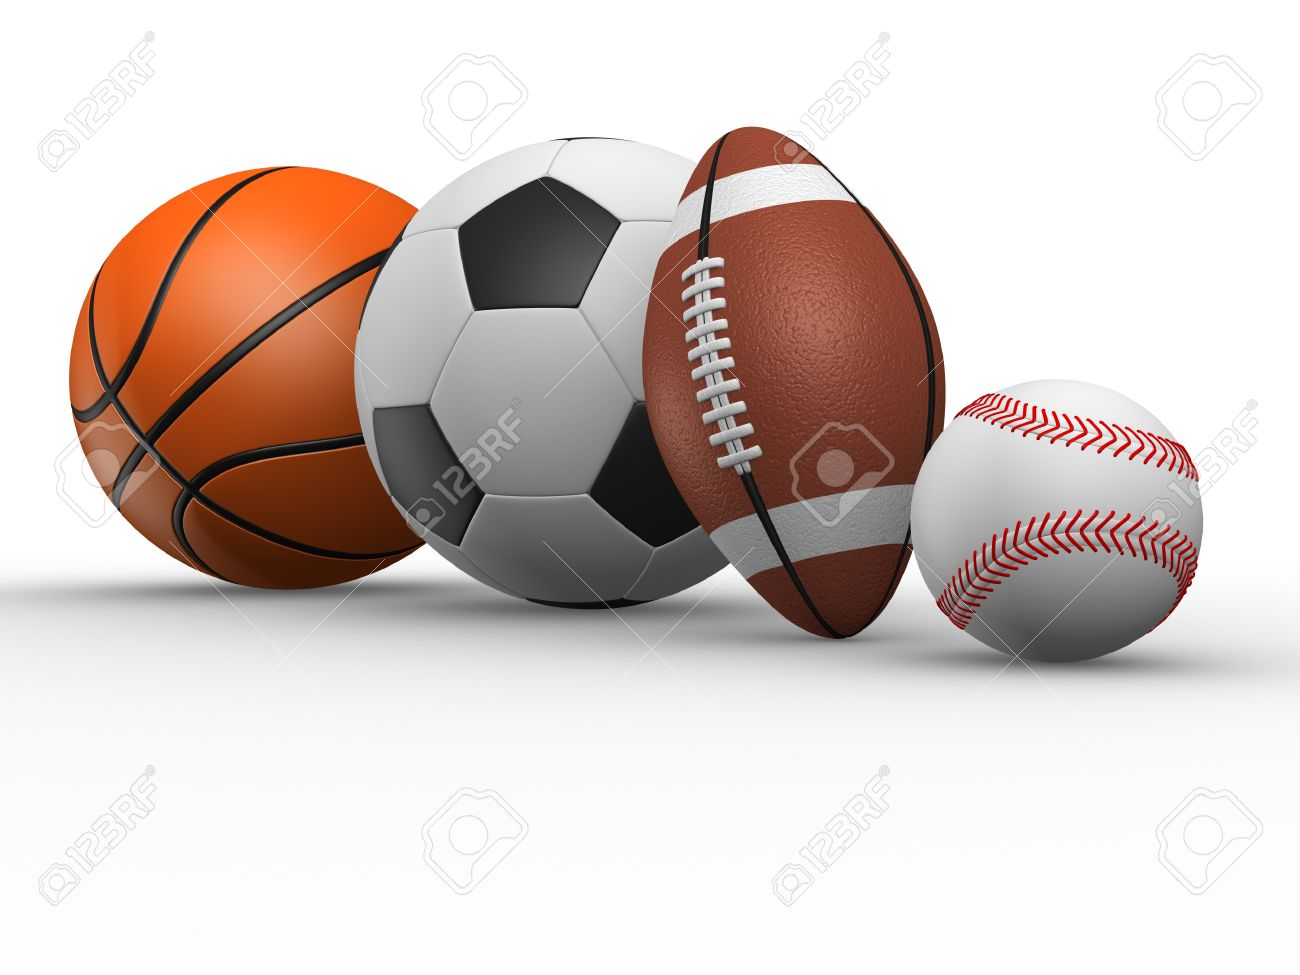 The football, rugby, baseball and basketball. 3d render various sports balls. Stock Photo - 14802601